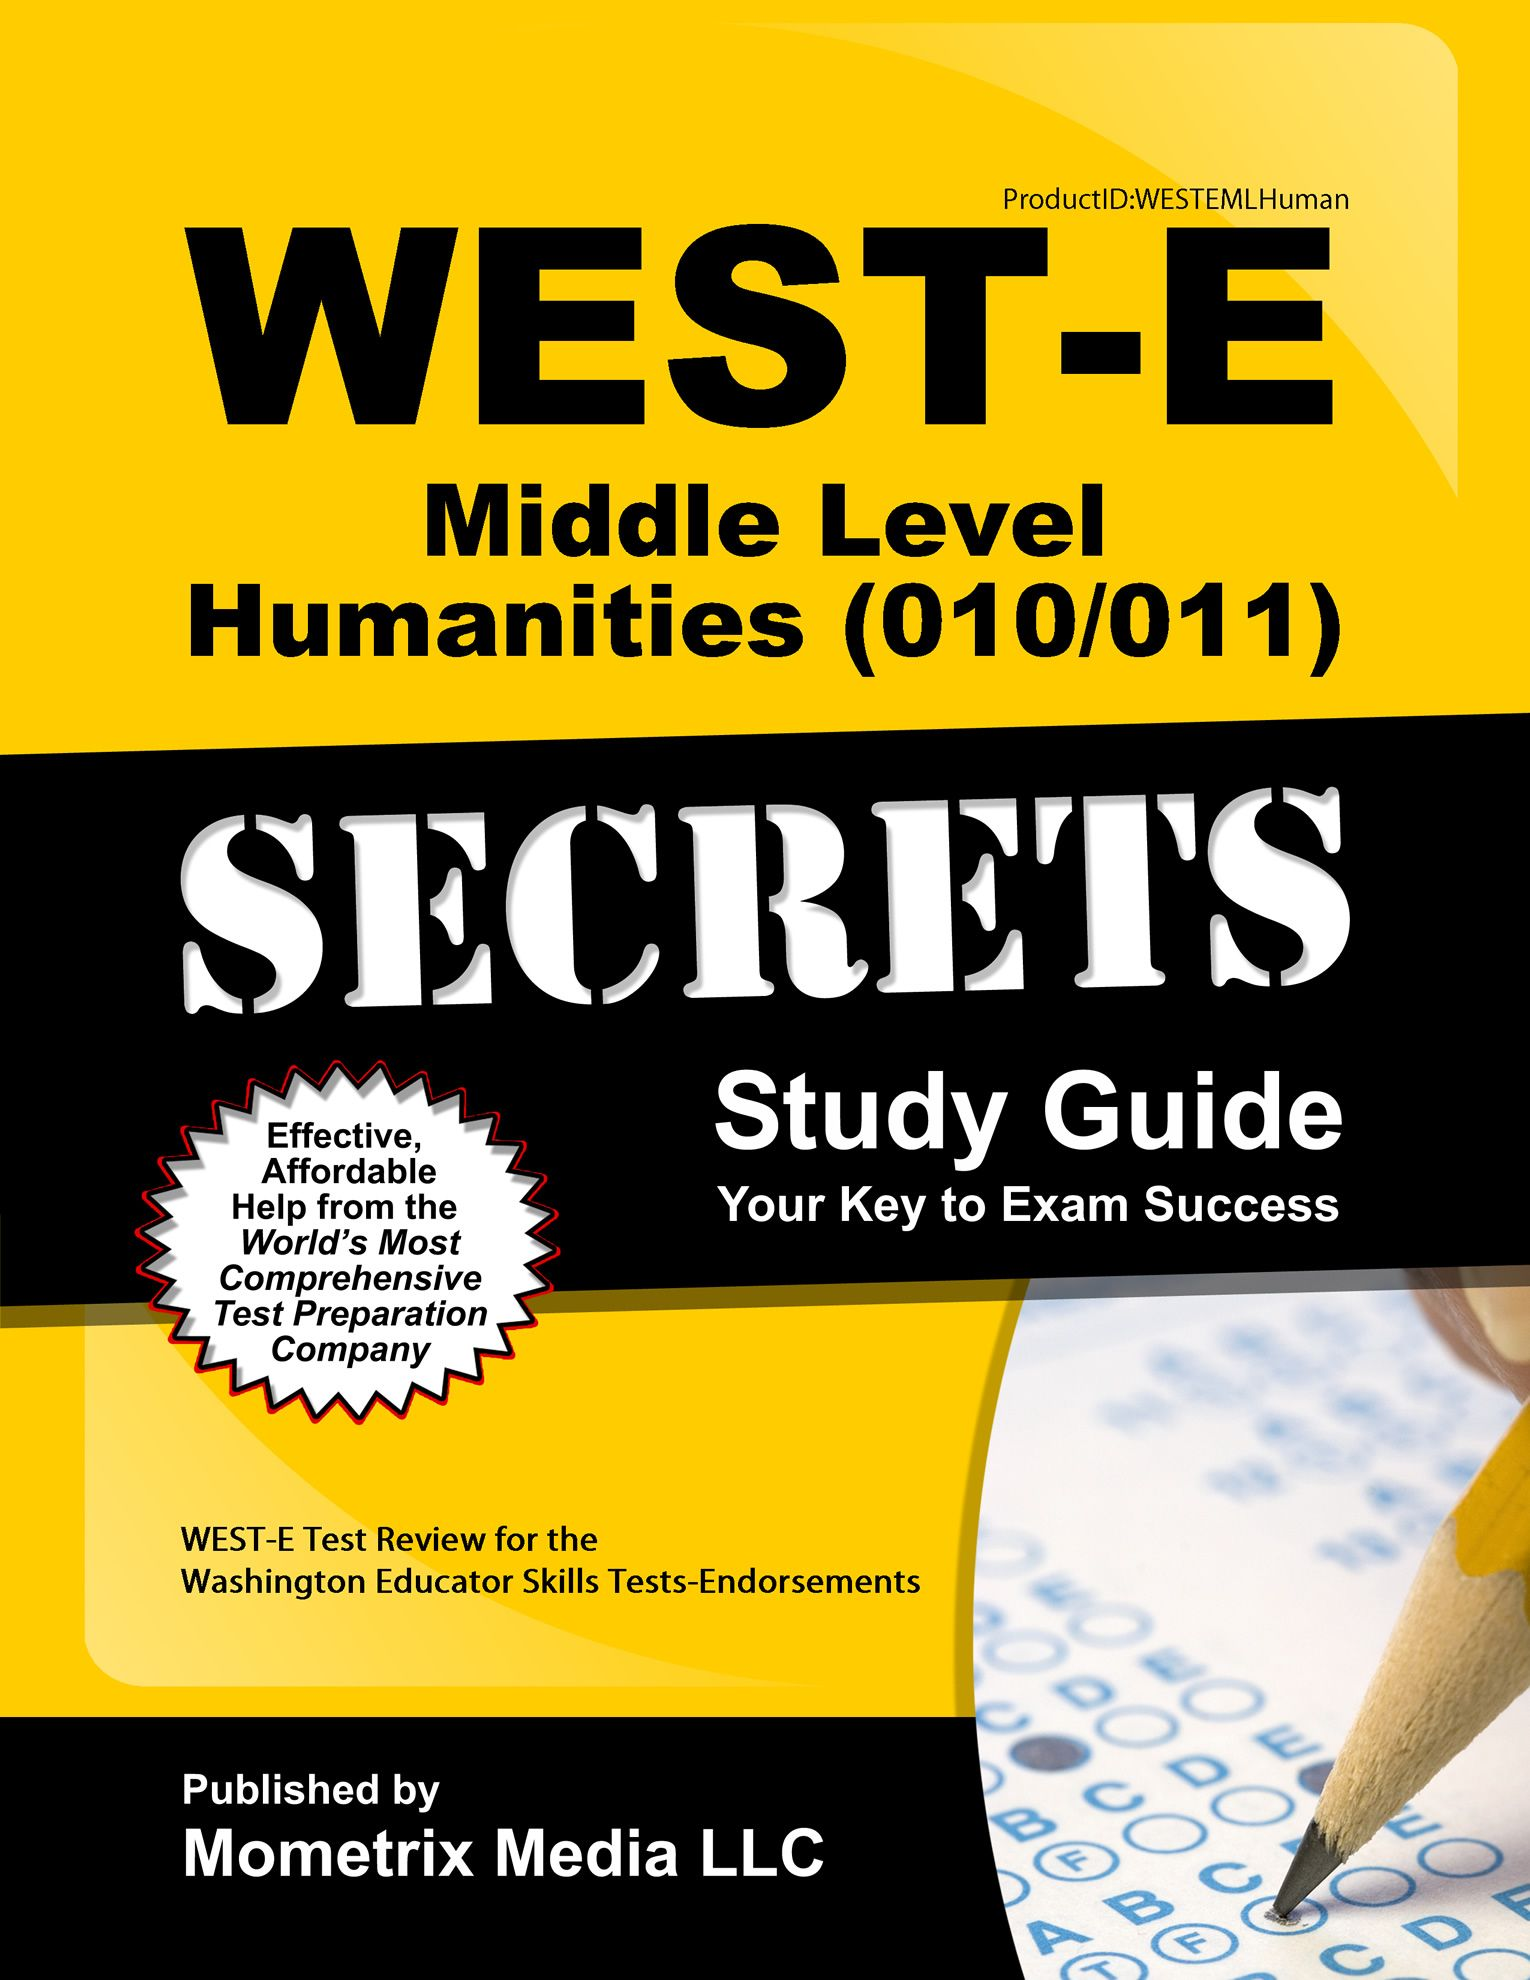 WEST-E Middle Level Humanities (010/011) Exam Study Guide  http://mo-media.com/west/ #west